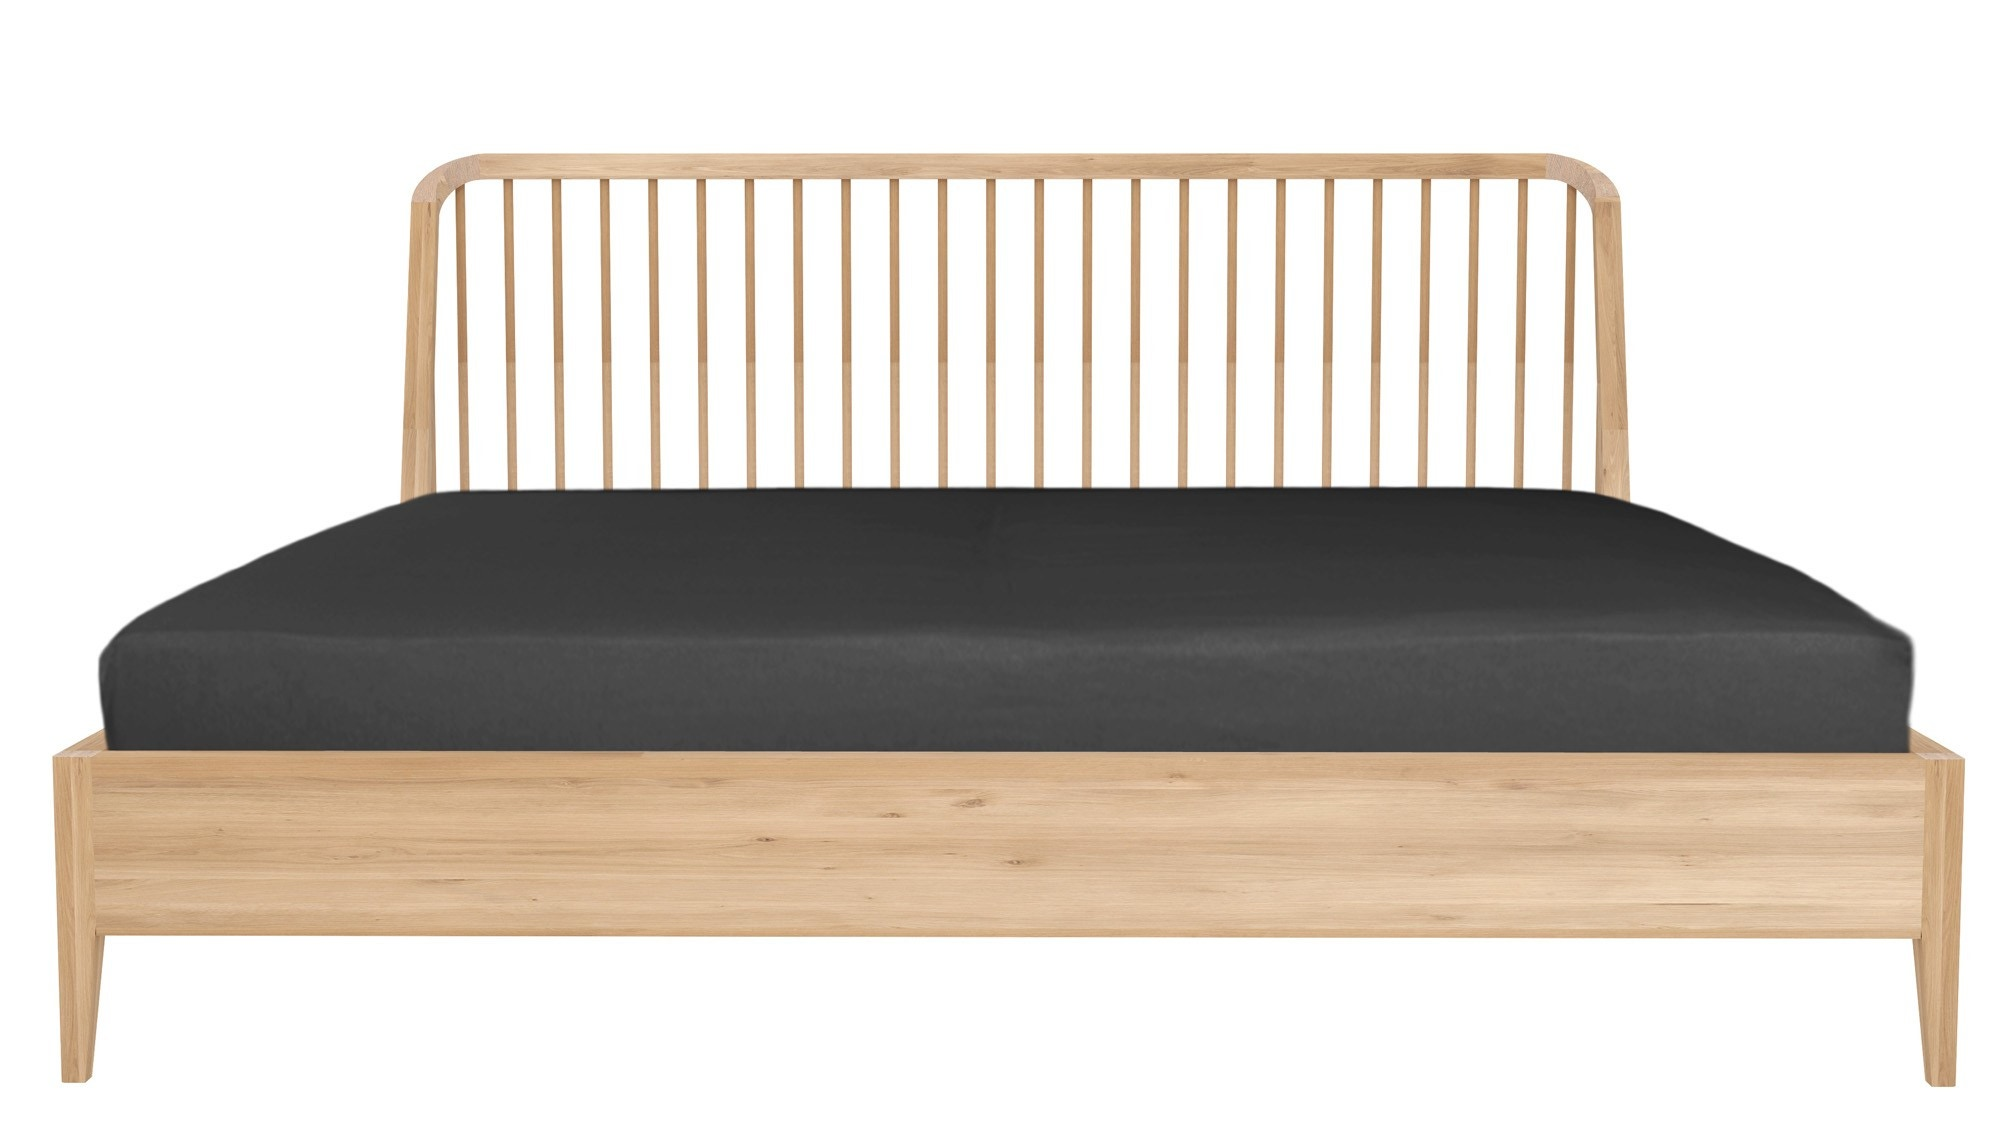 Ethnicraft Spindle Bed with Slats